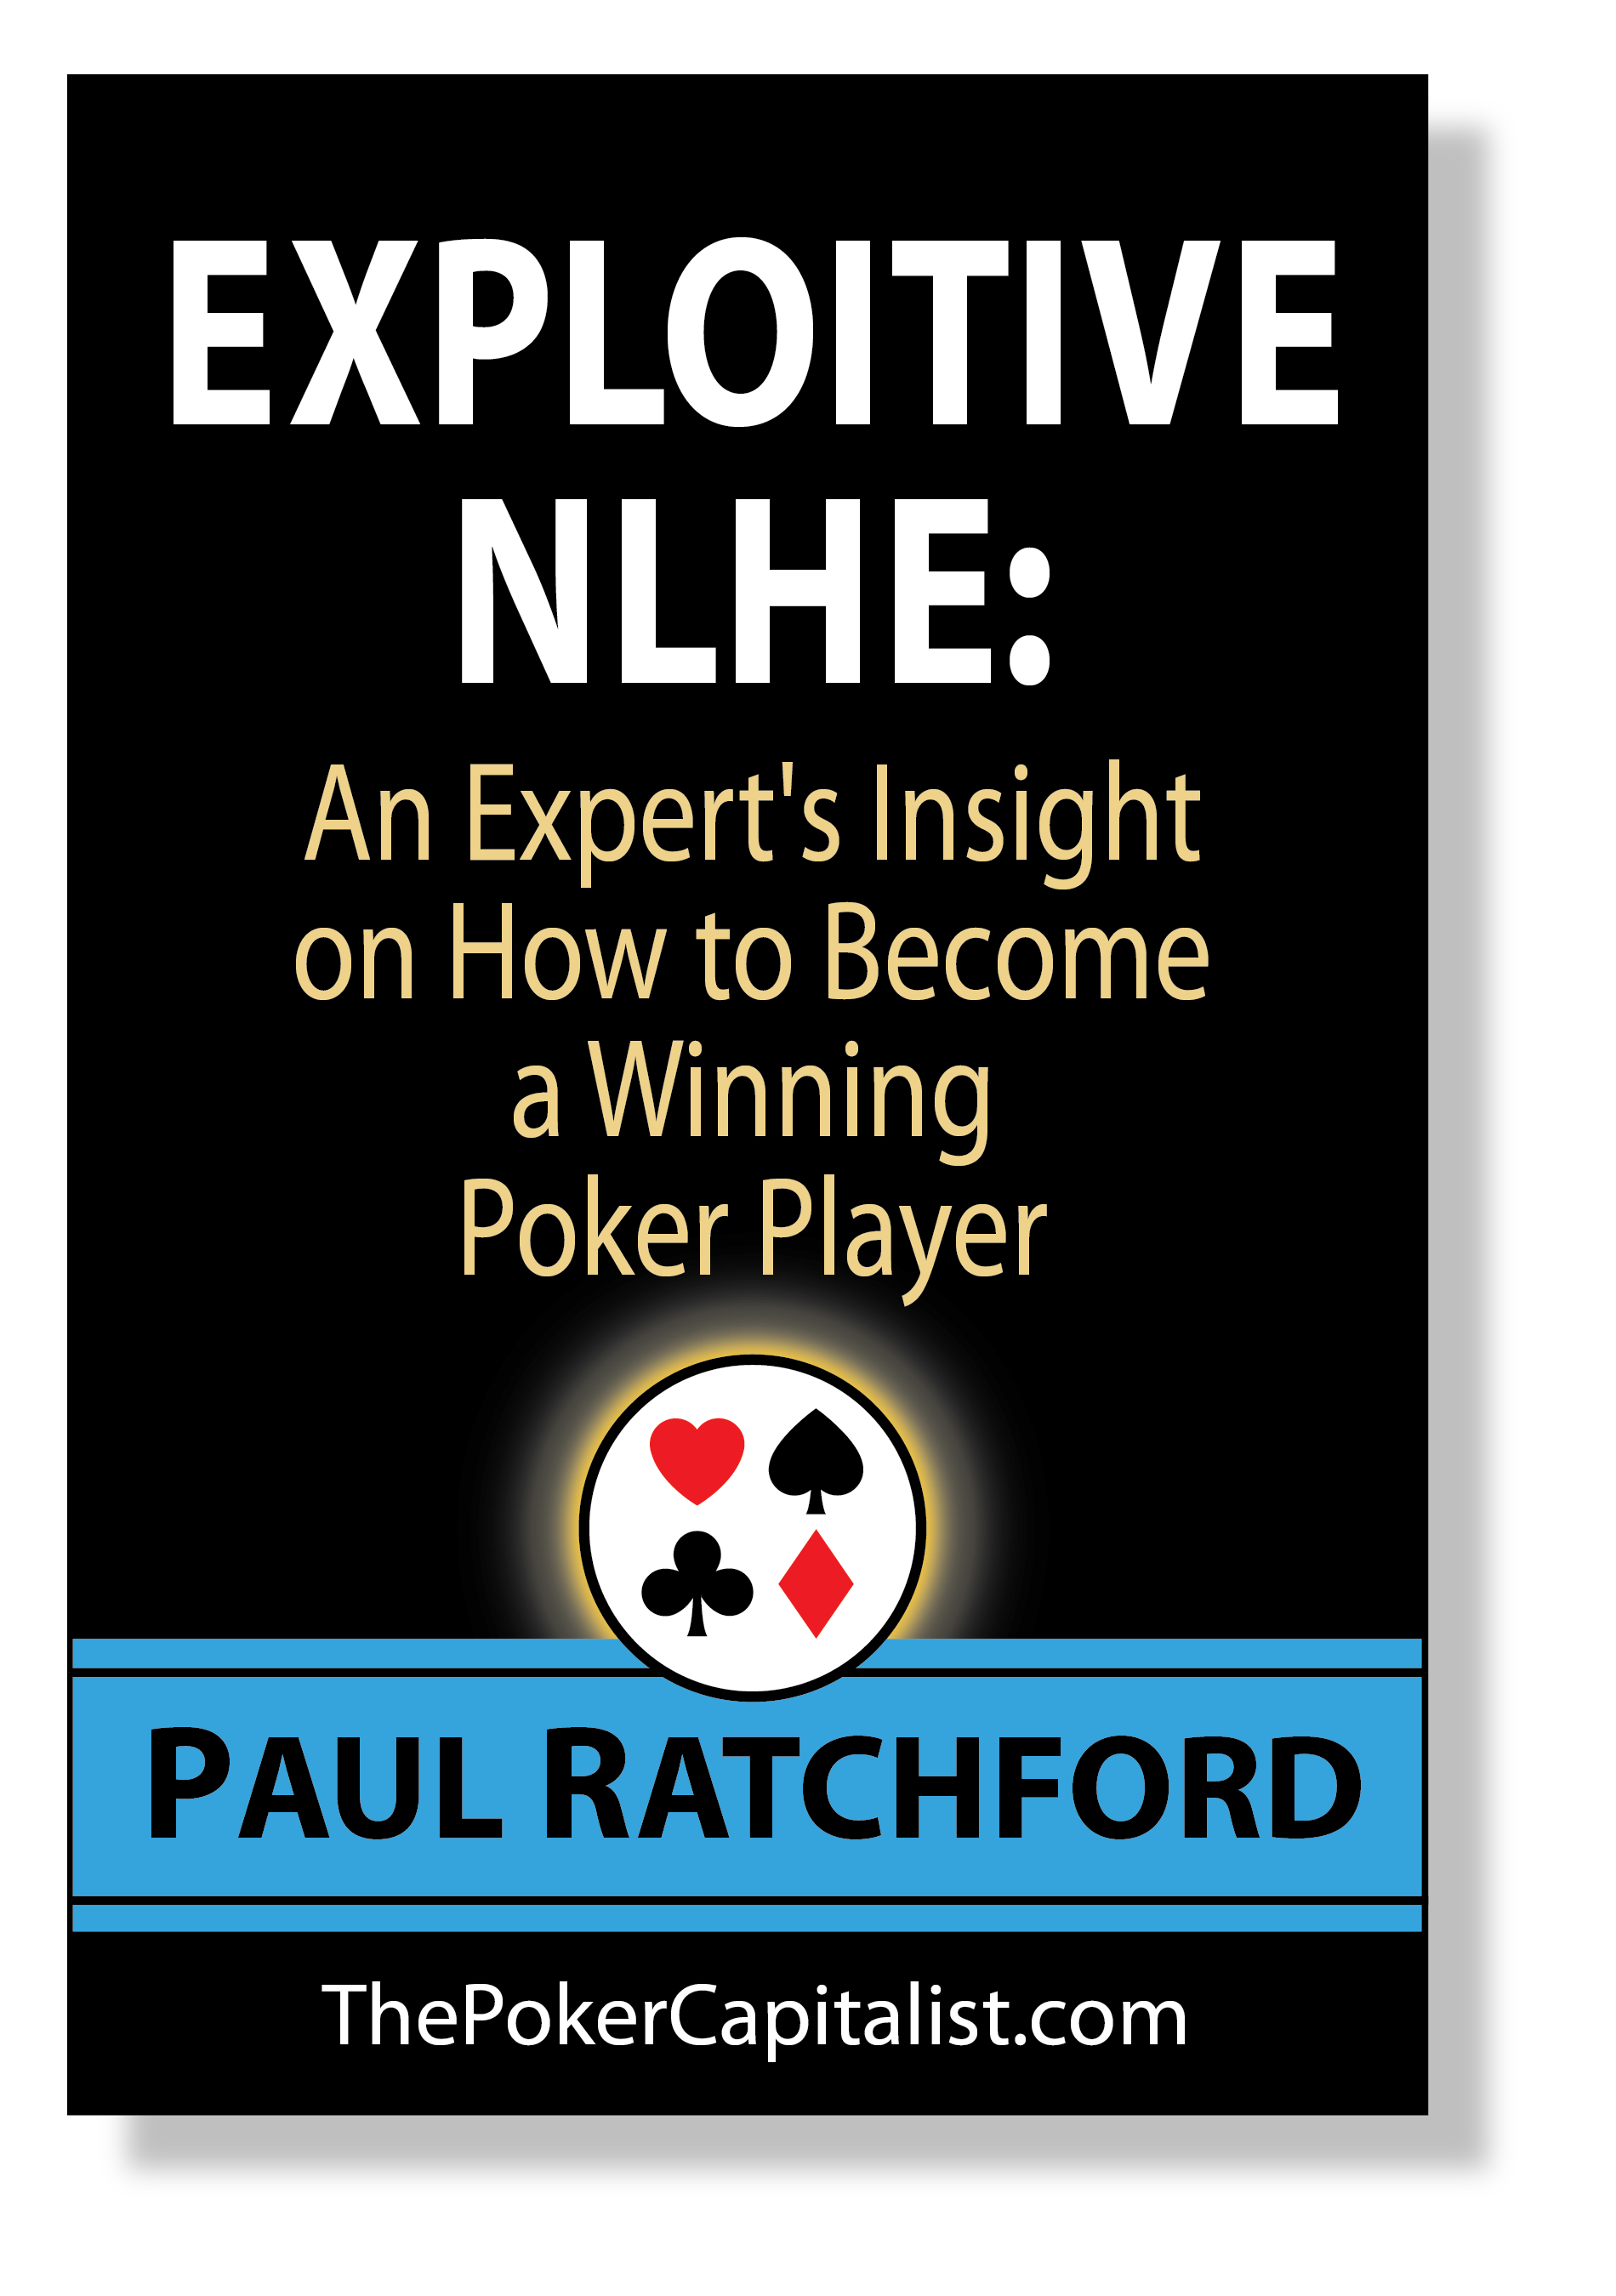 Paul's book cover final_3